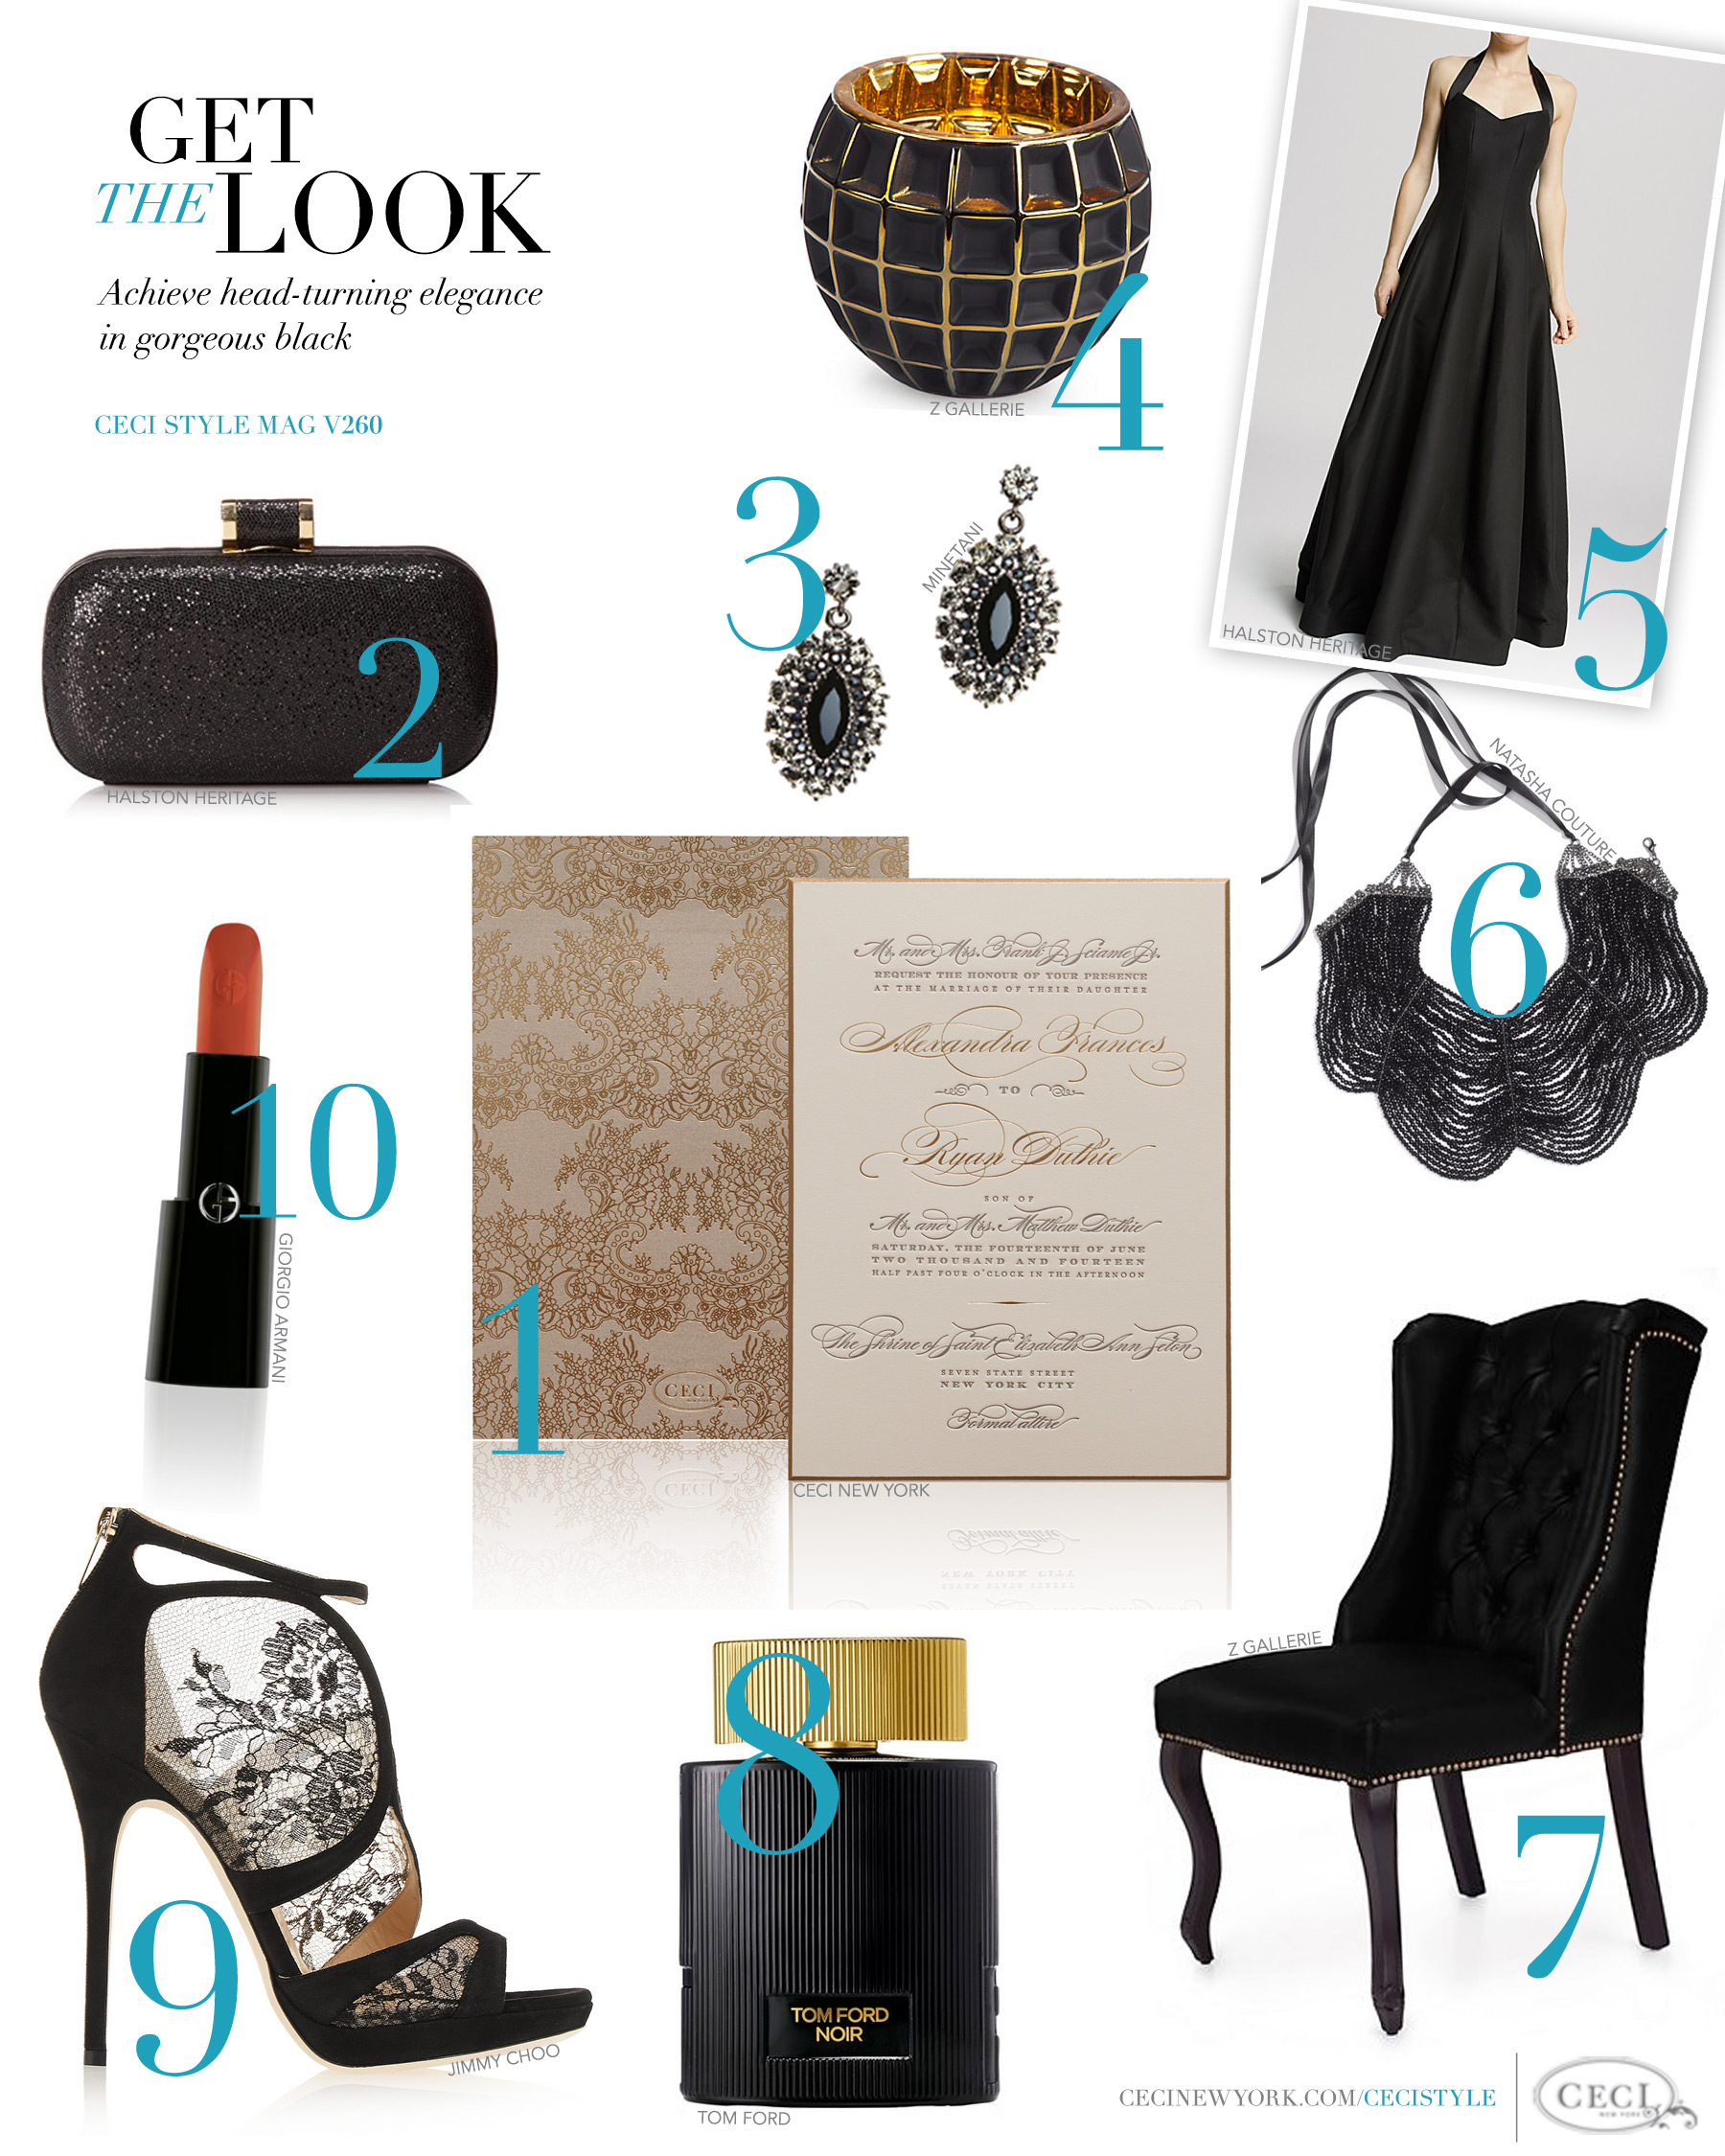 CeciStyle Magazine v260: Get The Look - Urban Elegance - Achieve head-turning elegance in gorgeous black lace - Luxury Wedding Invitations by Ceci New York - ceci new york, fashion, style, luxury wedding invitations, couture, custom wedding invitations, halston heritage, minetani, z gallerie, natasha couture, tom ford, jimmy choo, giorgio armani